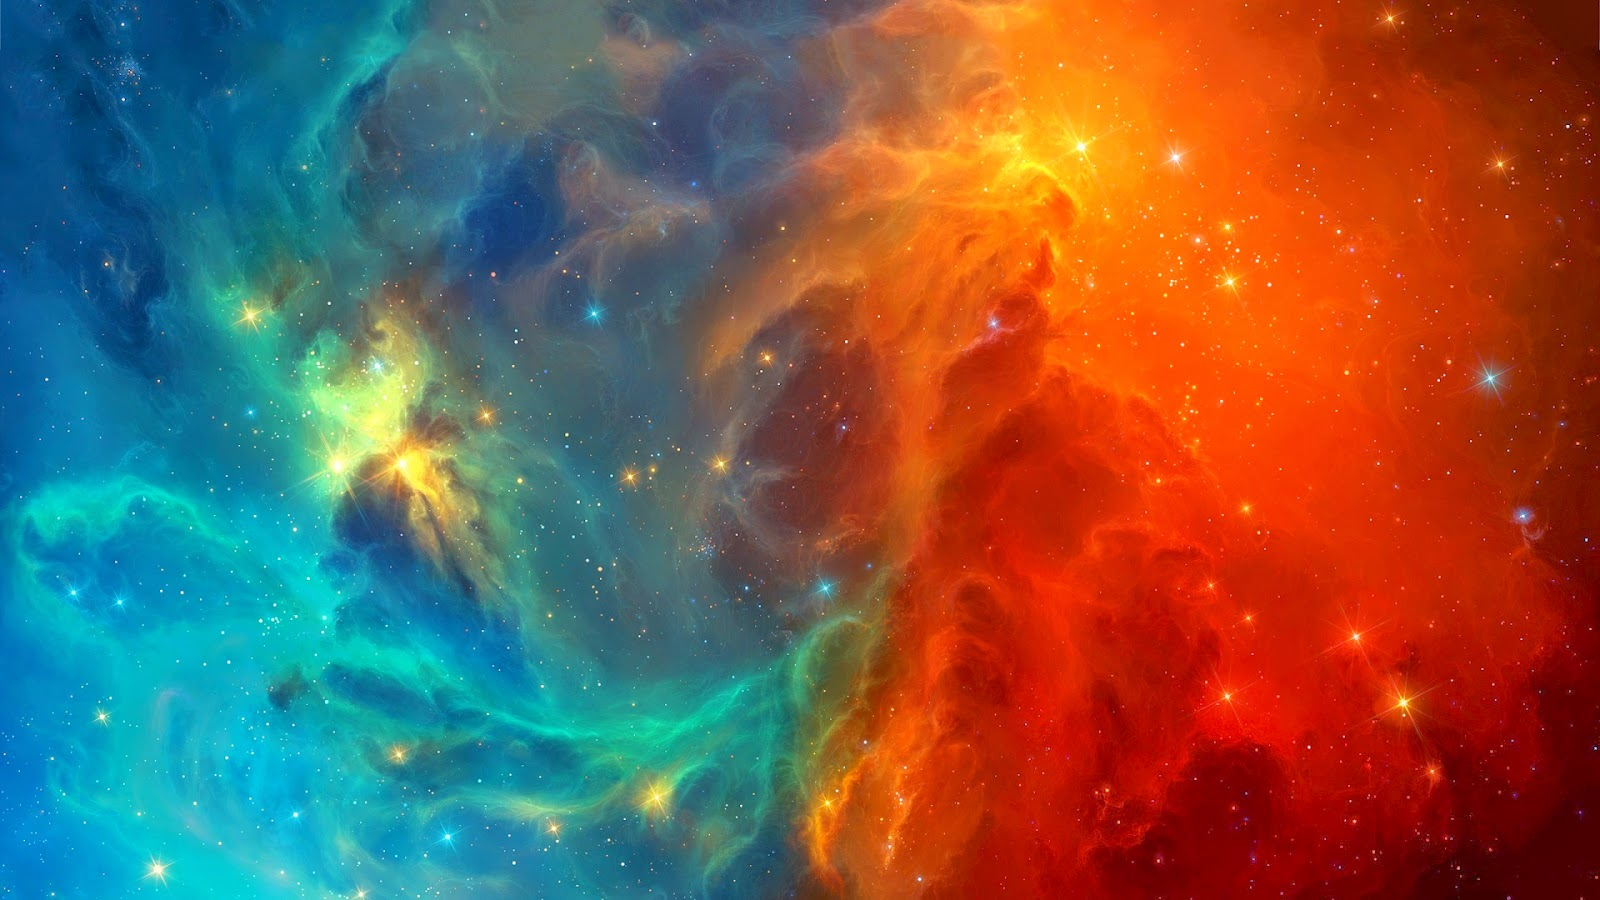 Wallpaper Nebula 1920x1080